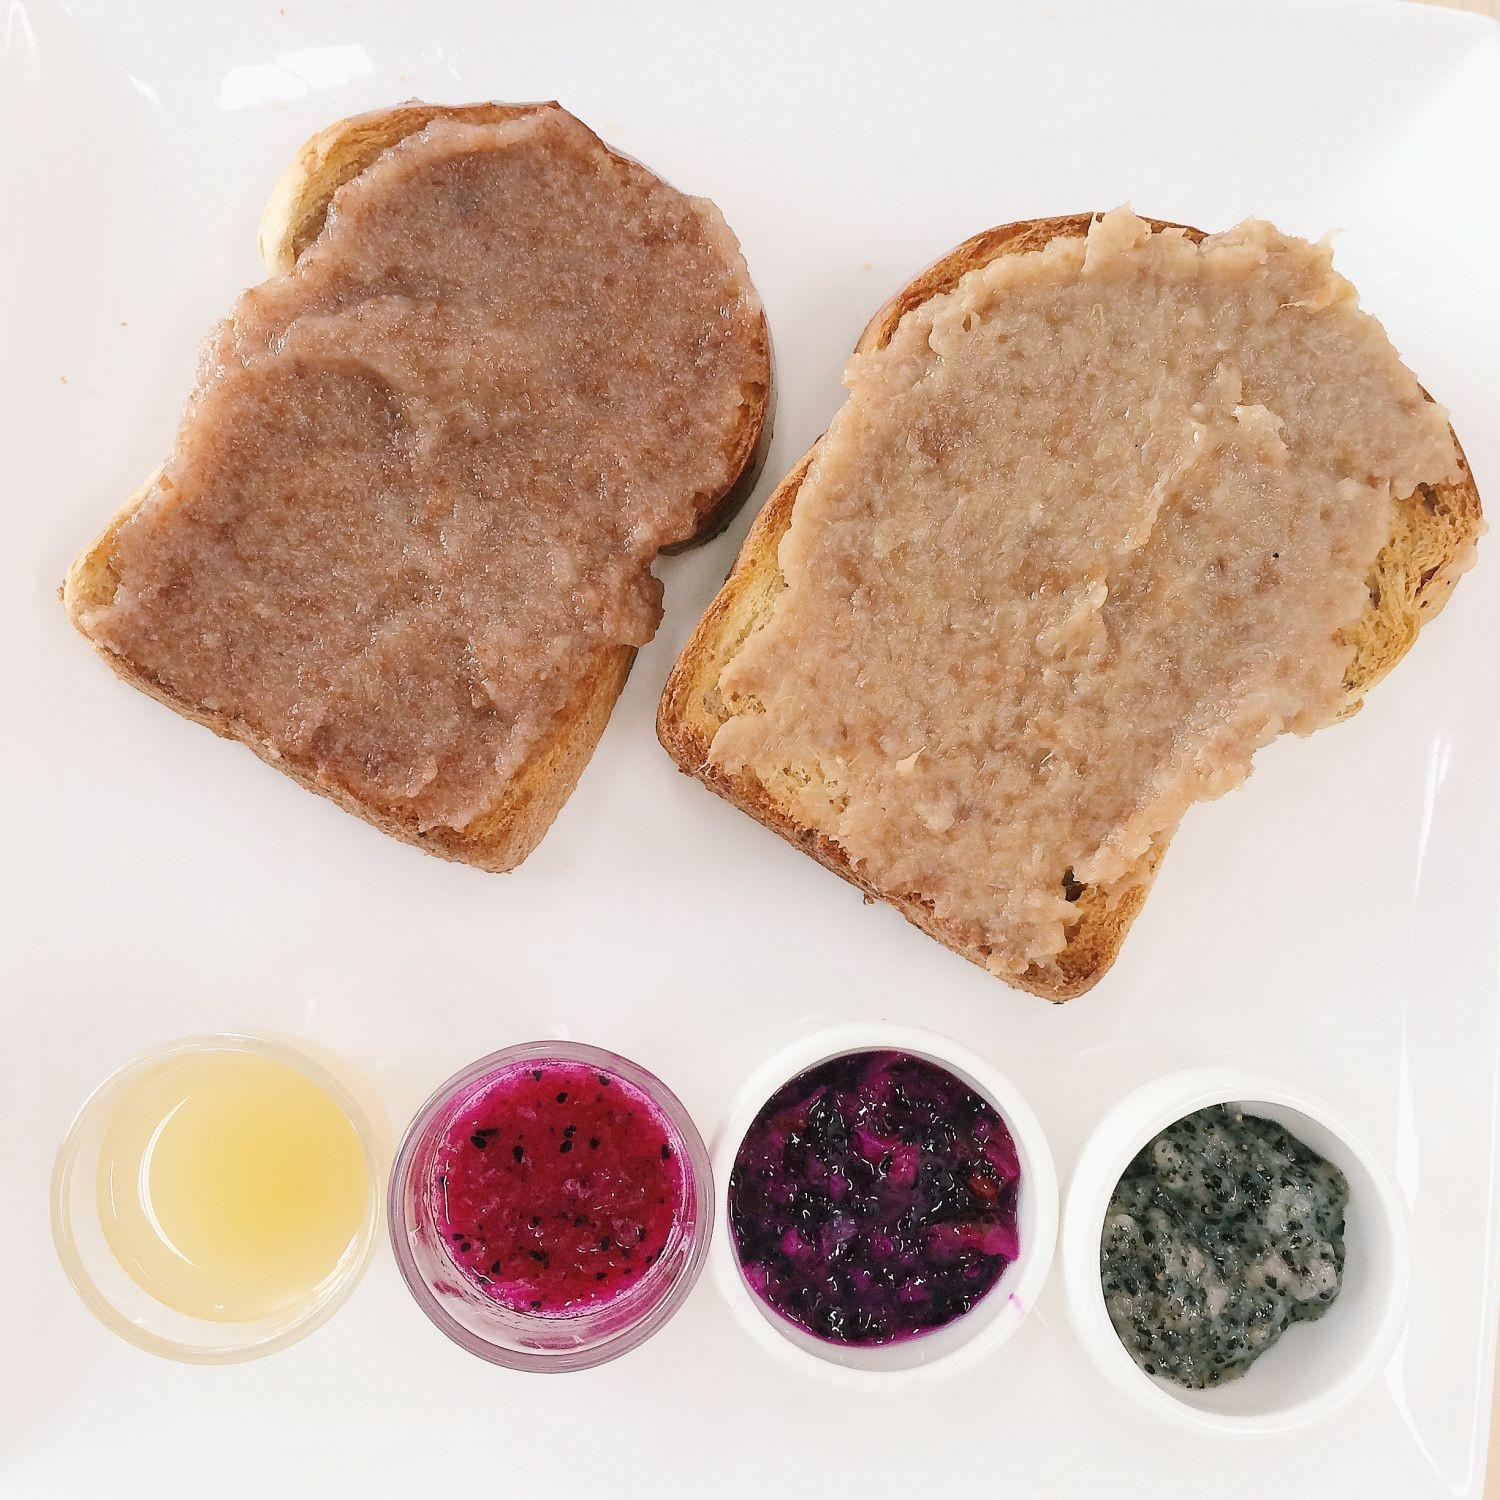 Toast with Fruit Enzyme Jam/Shots - Gobi Desserts